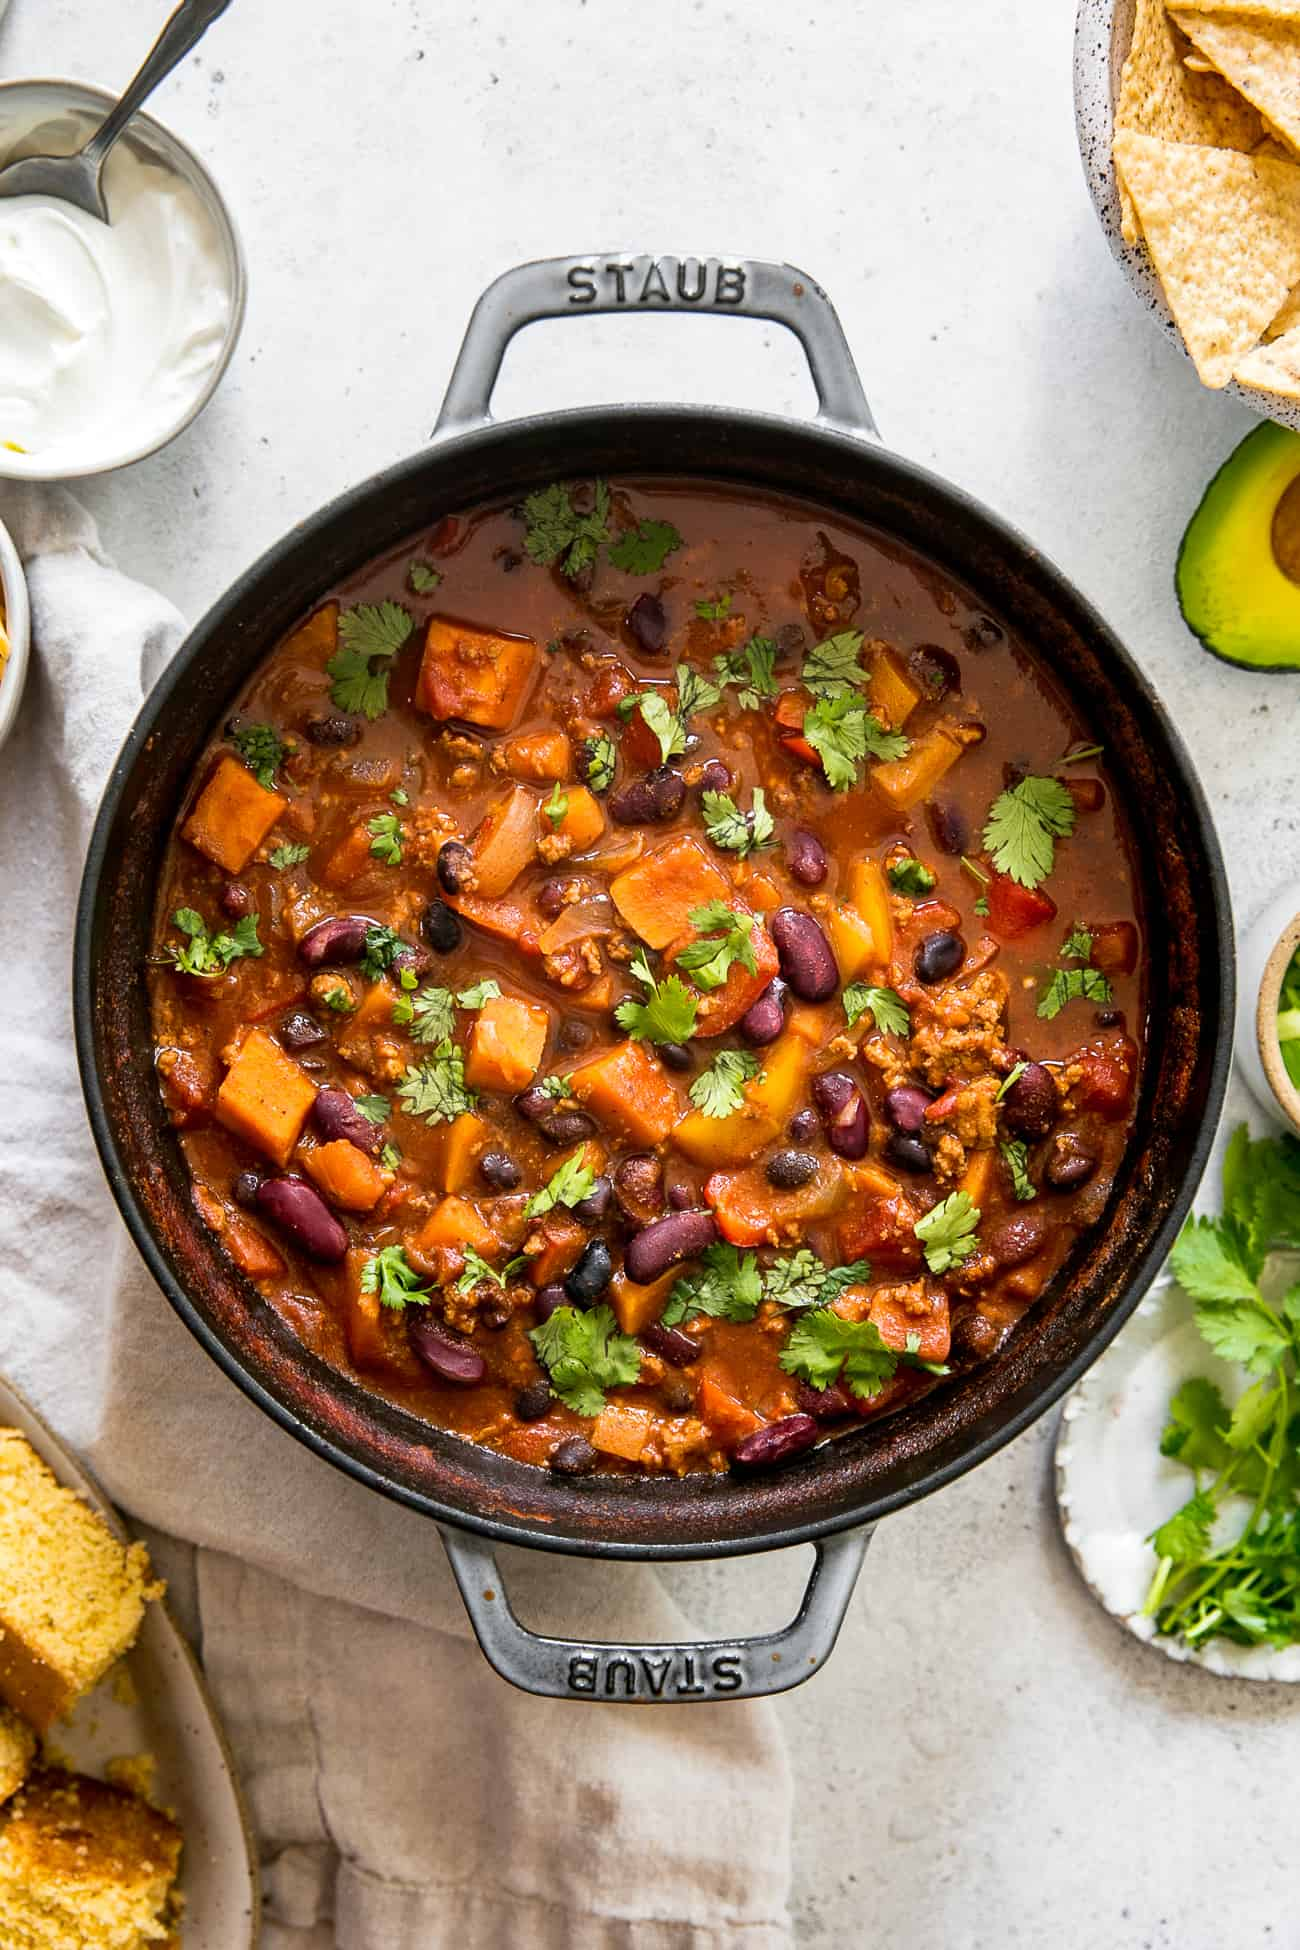 staub pot filled with healthy turkey chili, surrounded by cornbread, tortilla chips, cilantro and sour cream